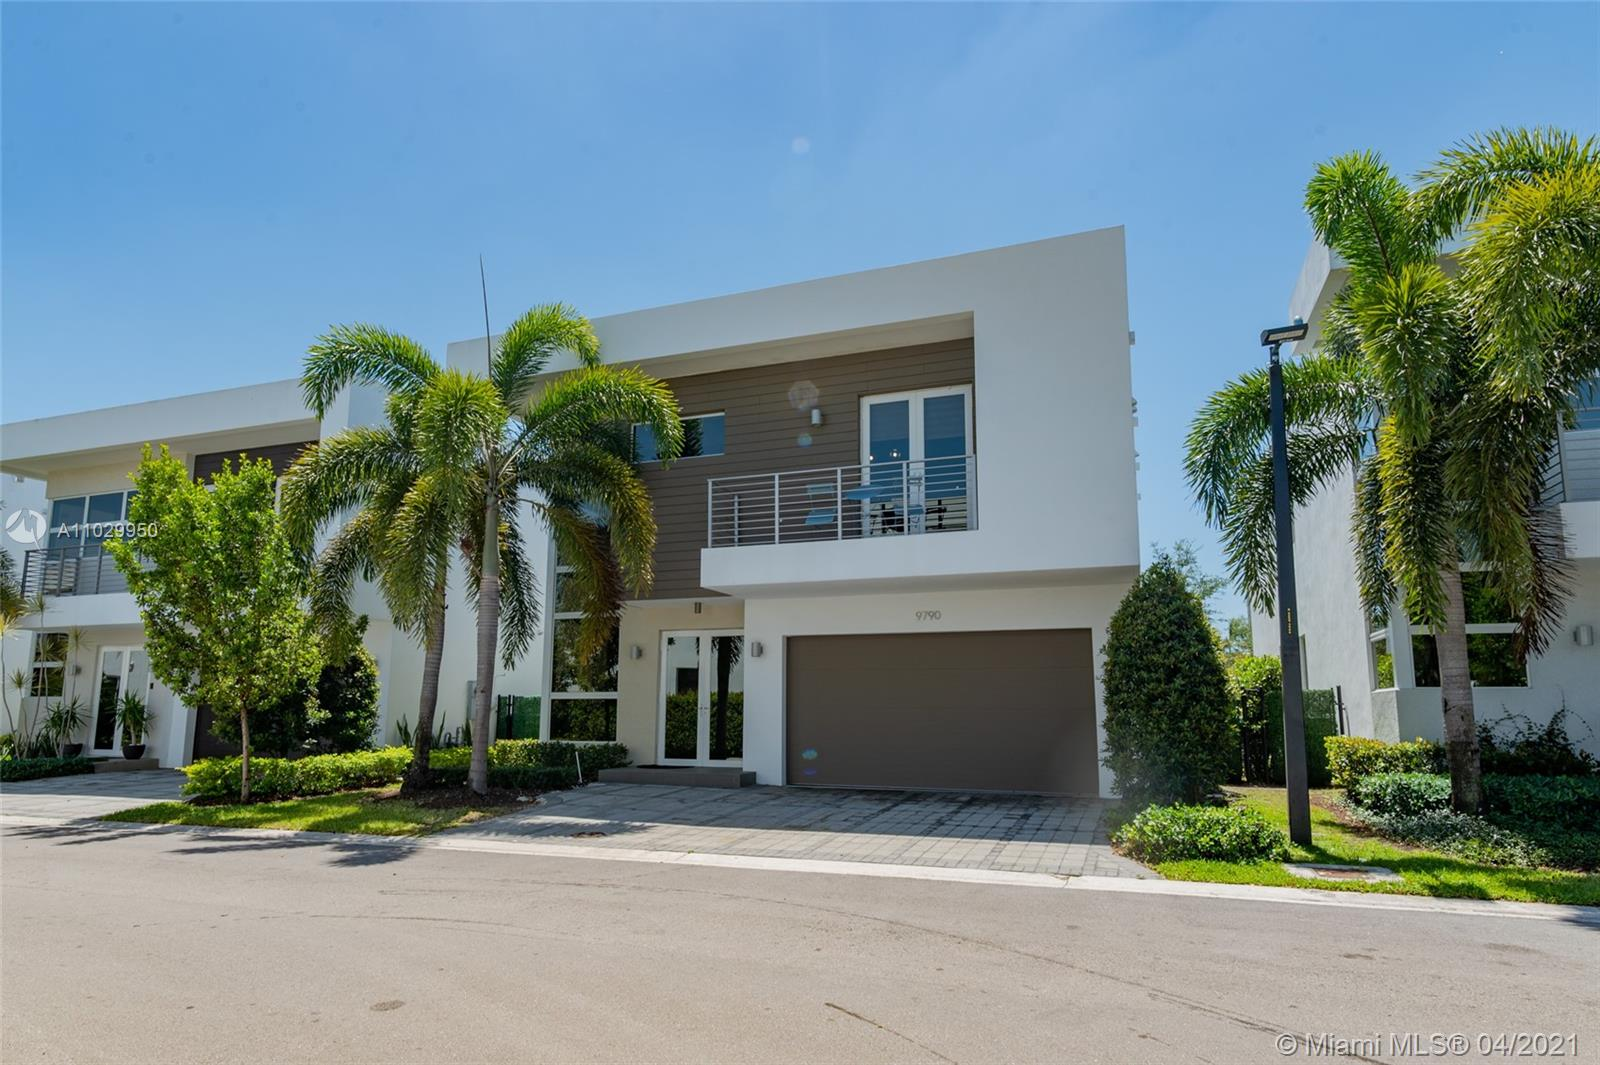 Doral Commons Residential - 9790 NW 74th Ter, Doral, FL 33178